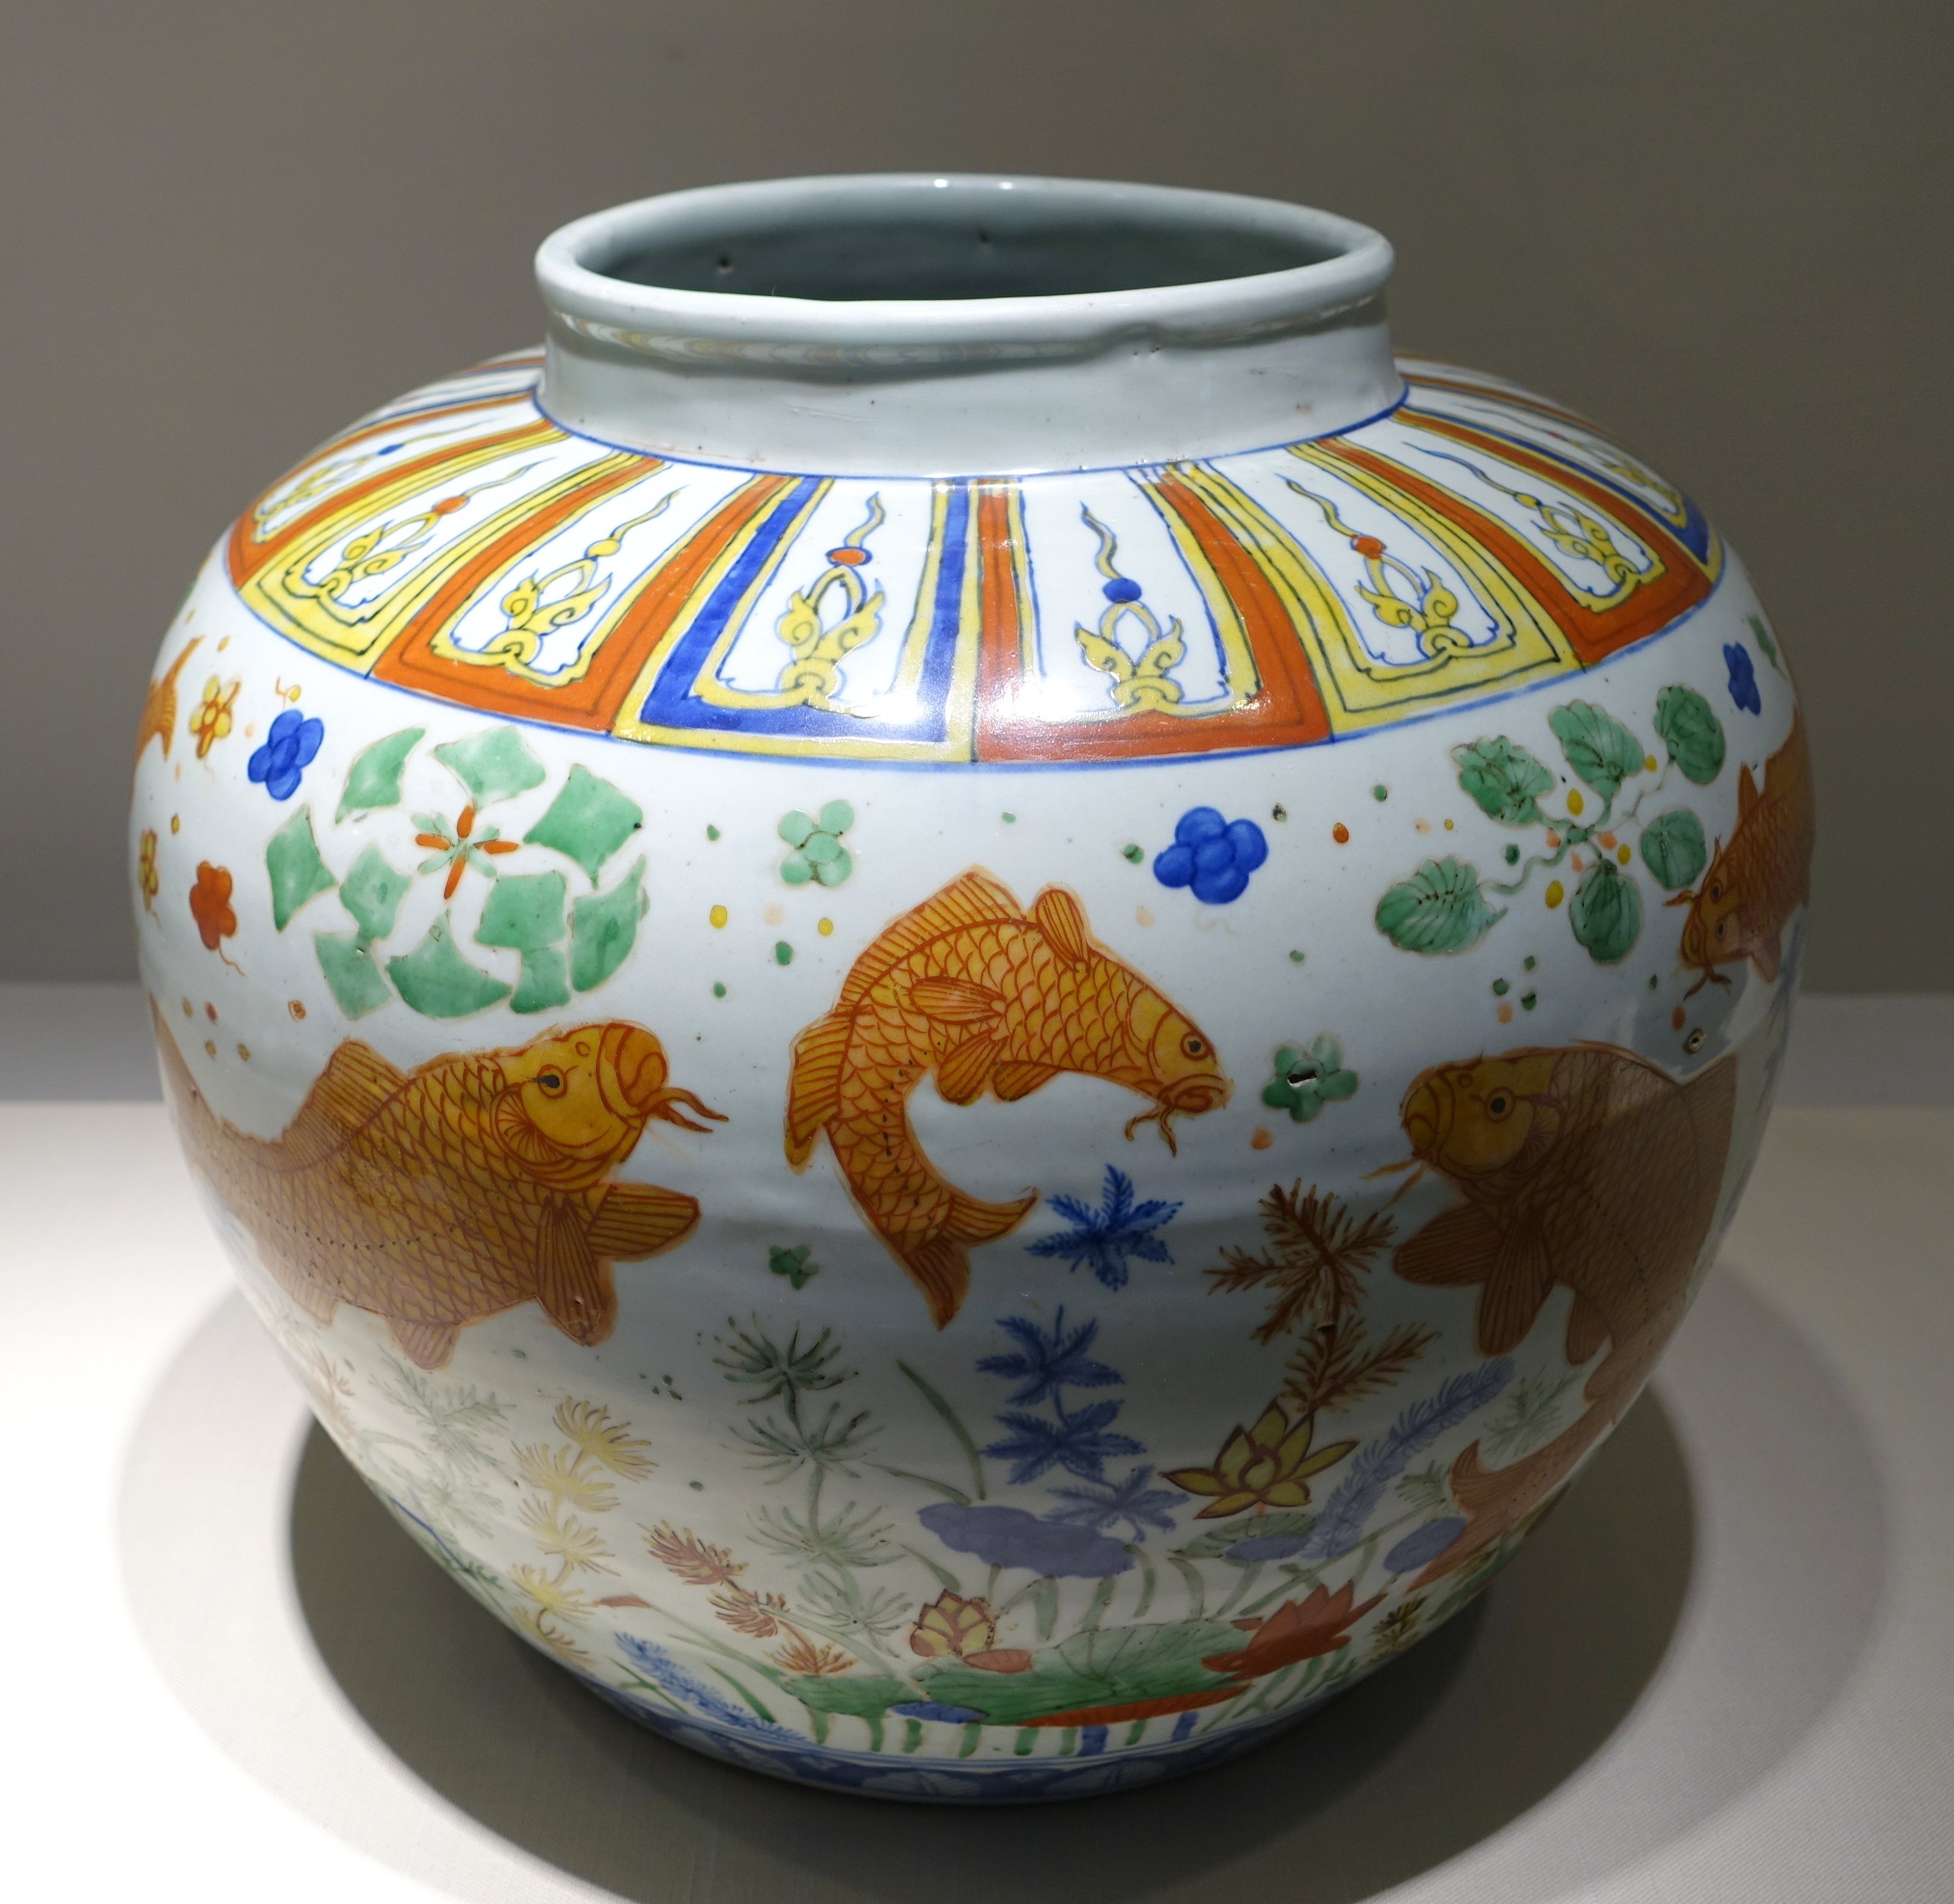 Filejar with fish and water weed design china jingdezhen kiln filejar with fish and water weed design china jingdezhen kiln ming reviewsmspy